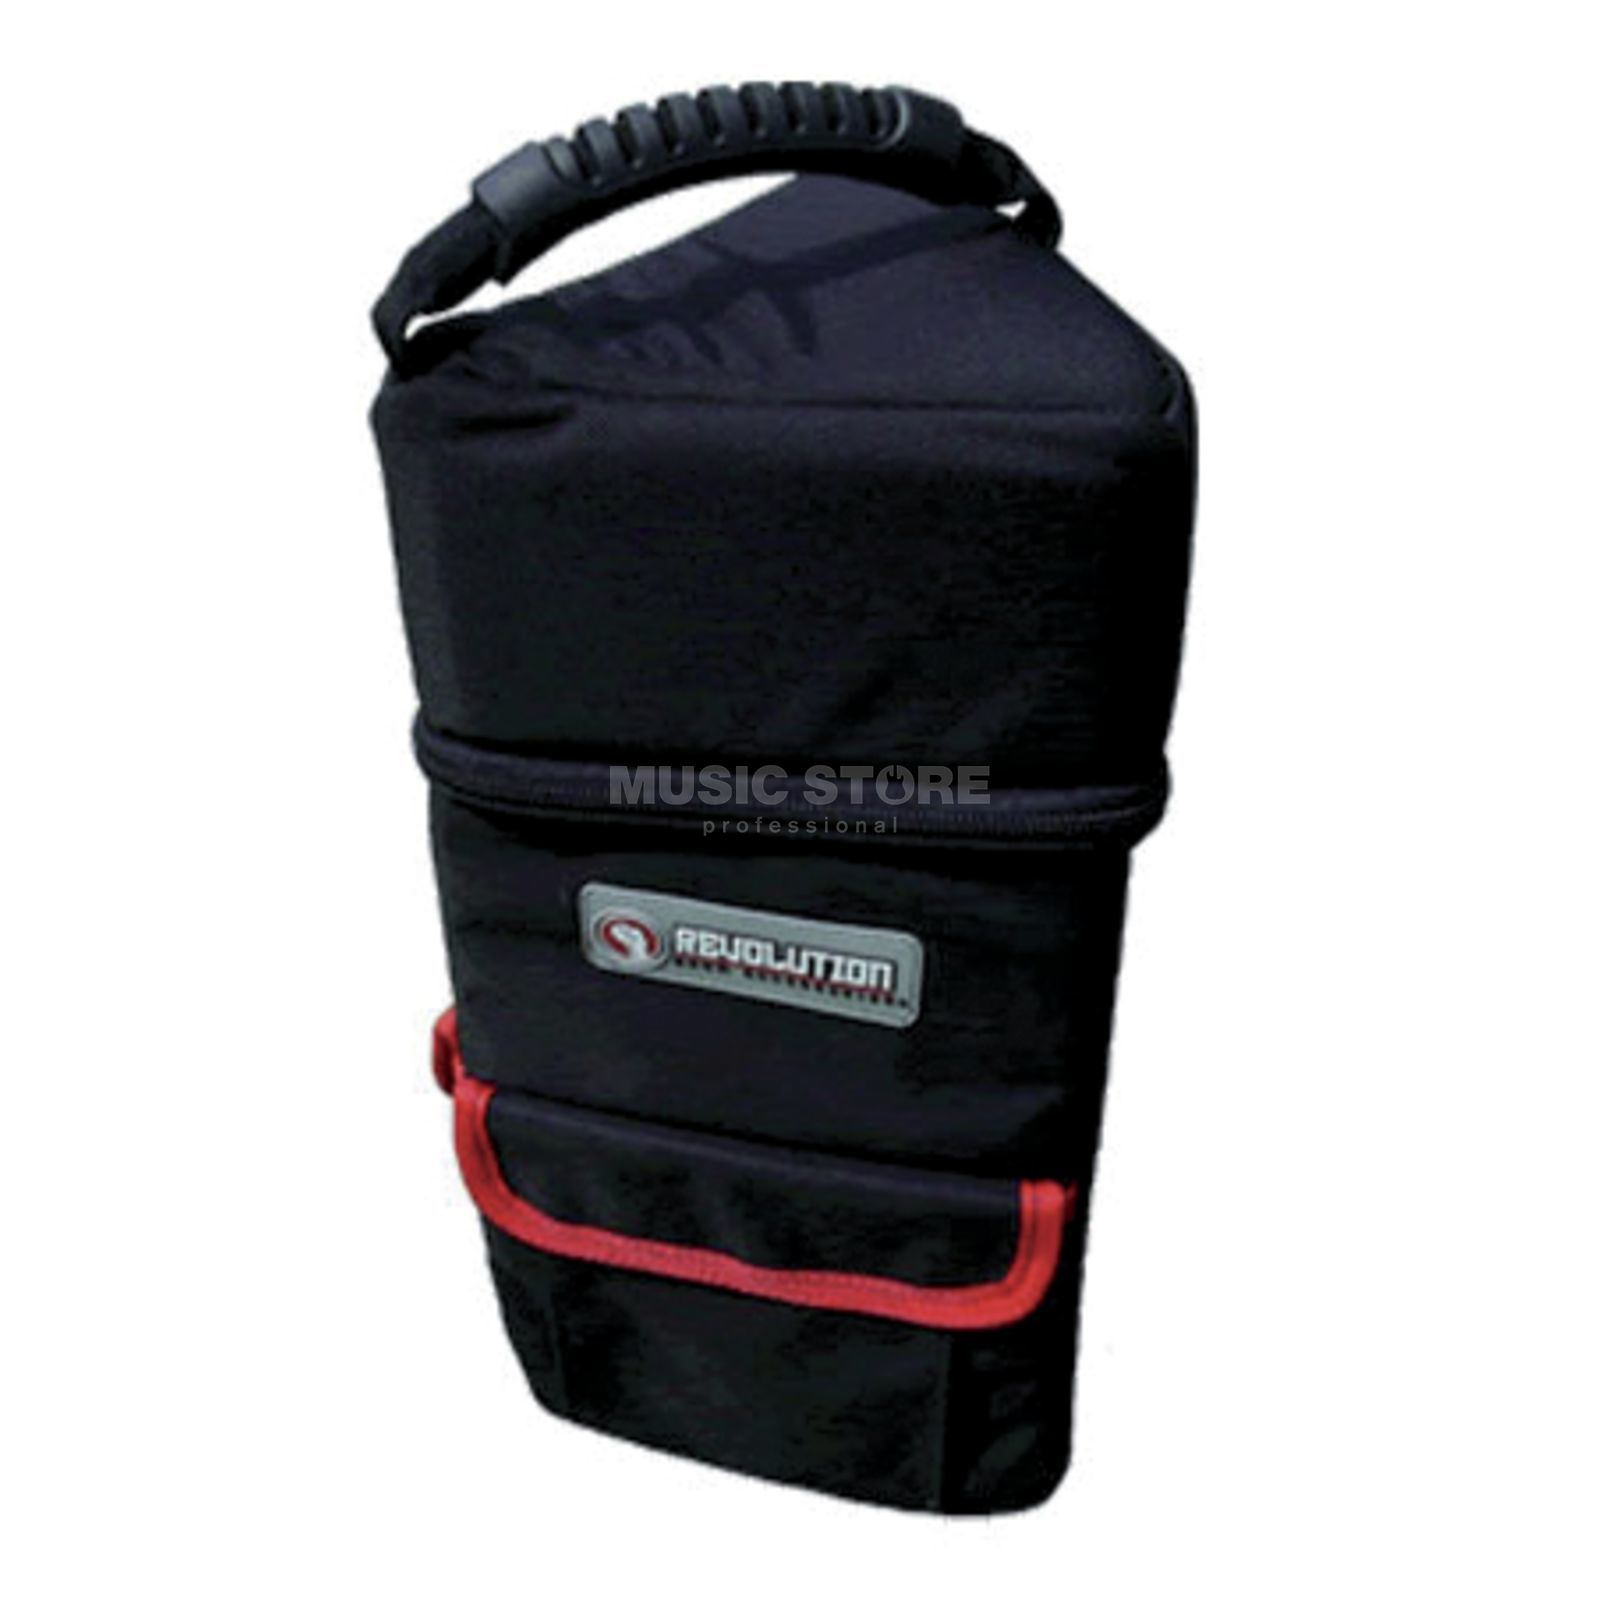 Revolution Drum StickBag Silo RSS  Product Image